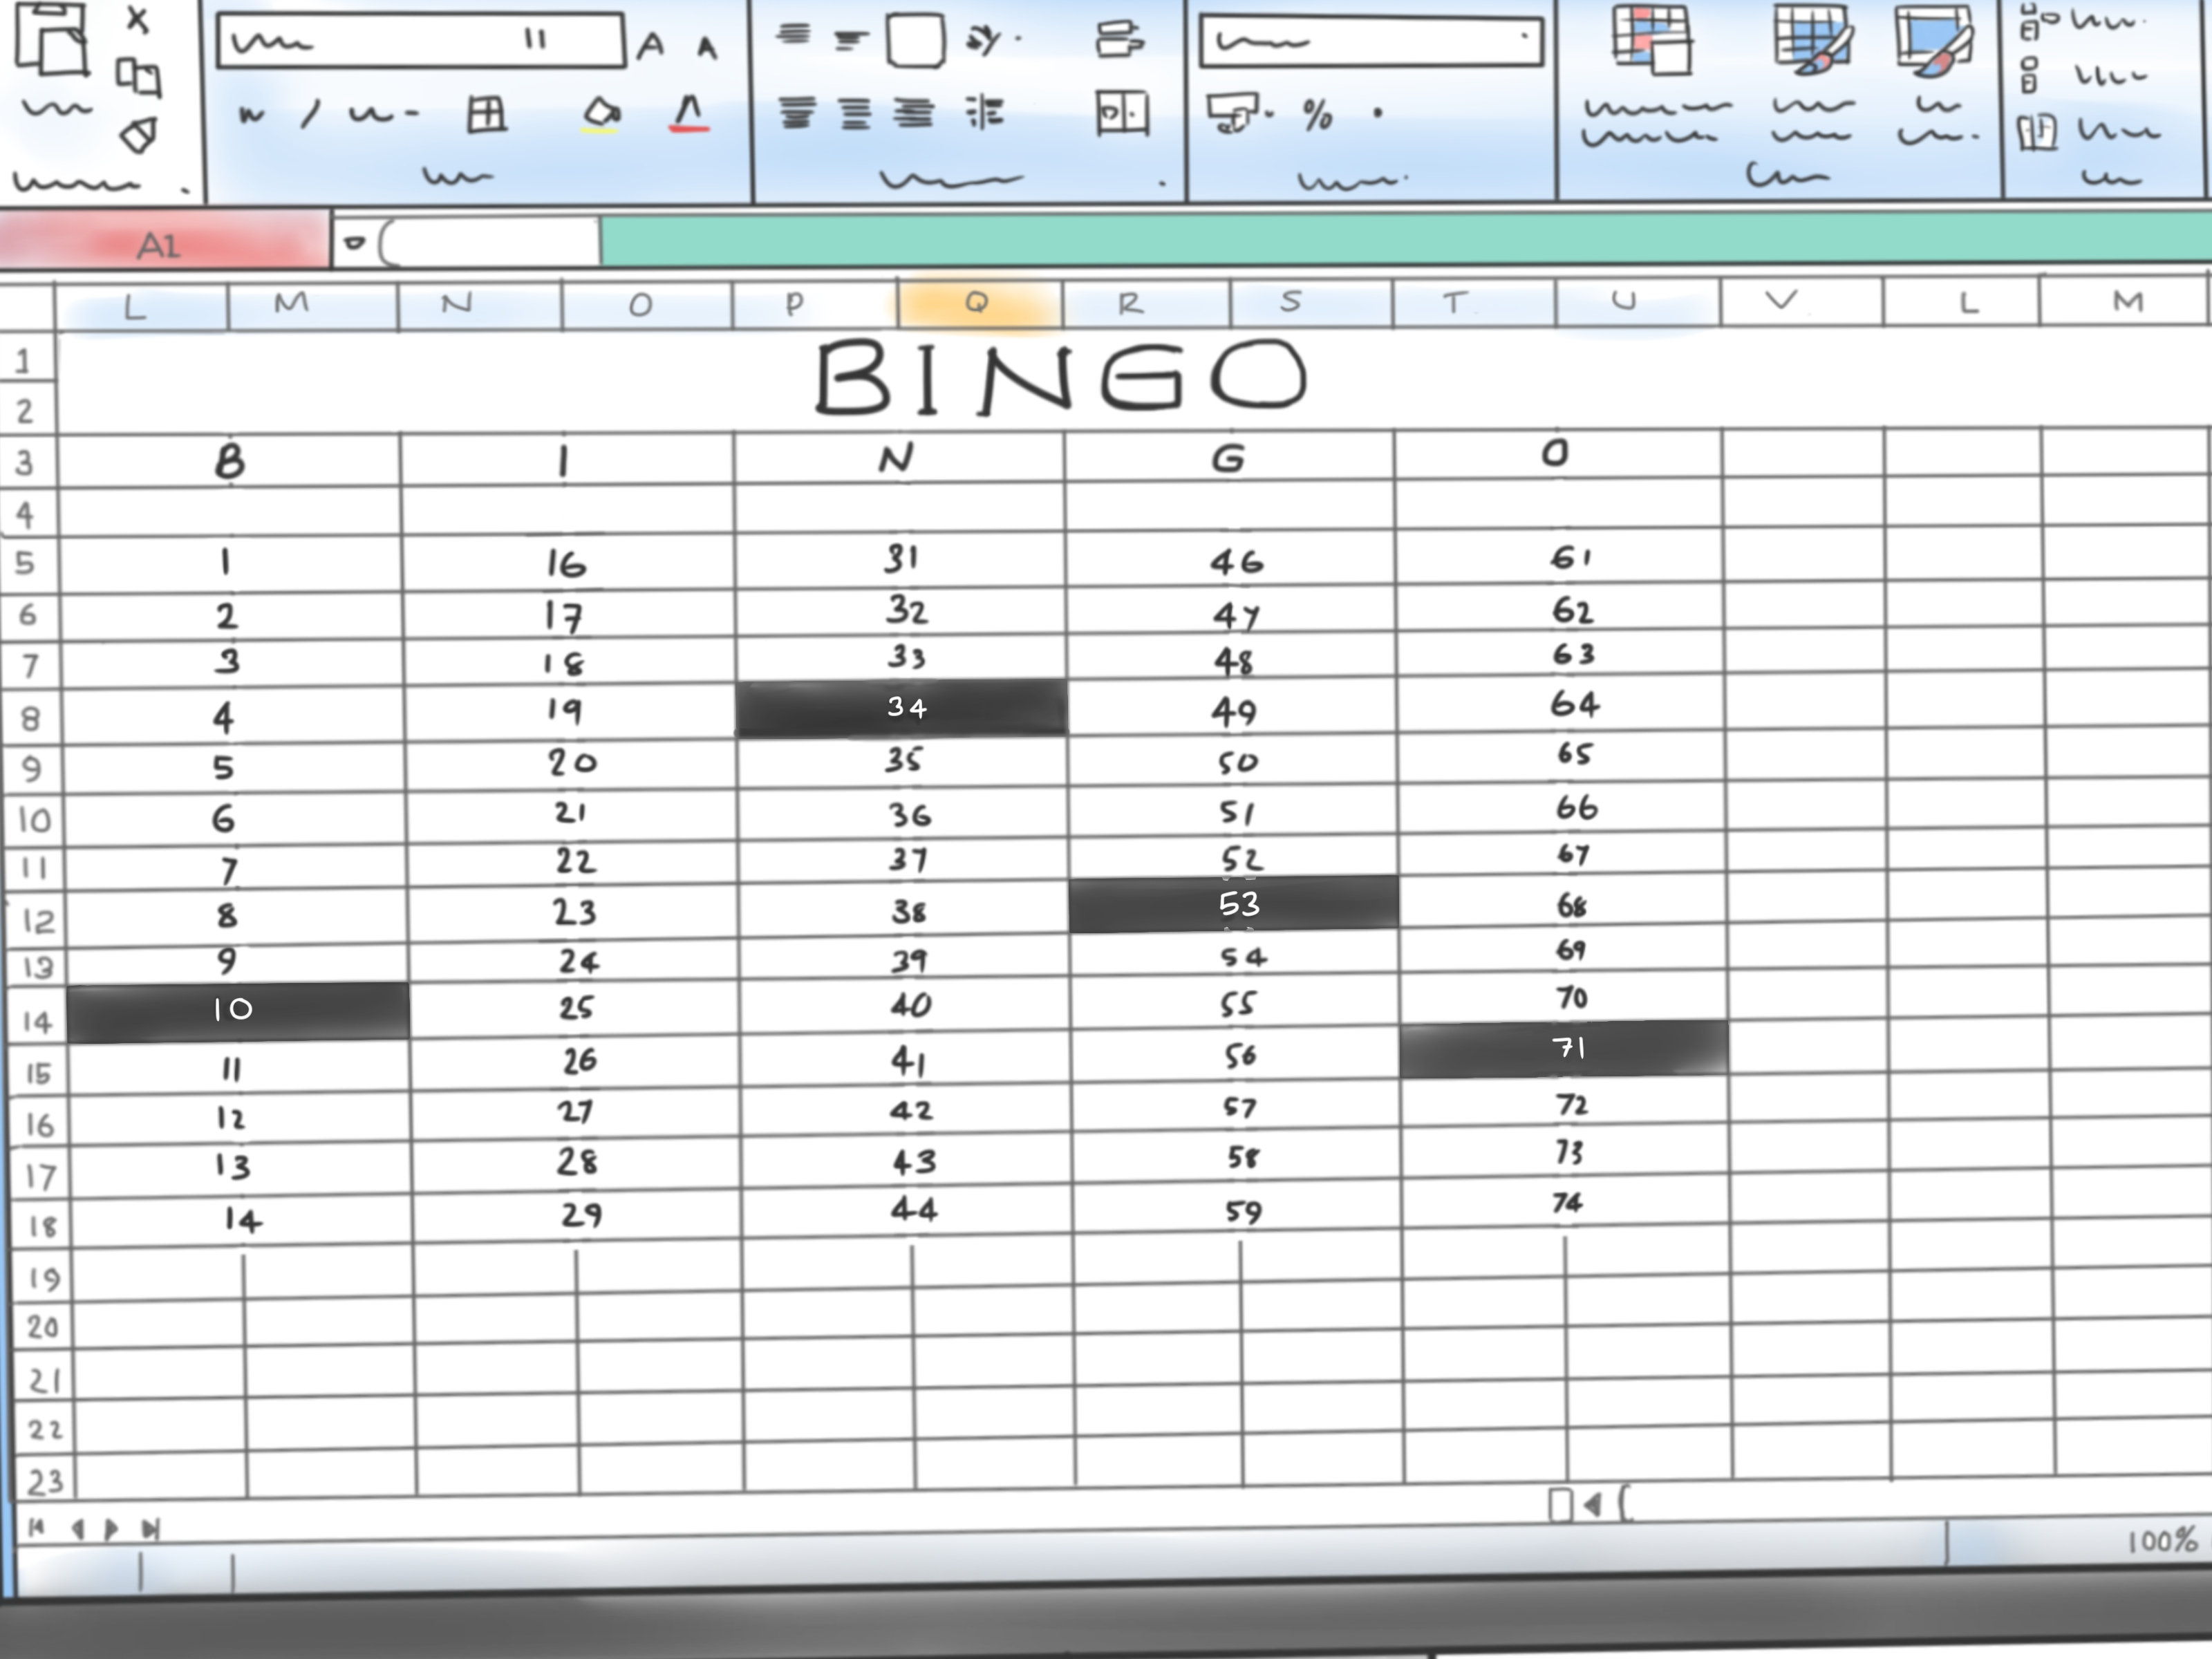 How To Create A Lottery Spreadsheet In Excel Intended For How To Make A Bingo Game In Microsoft Office Excel 2007: 9 Steps